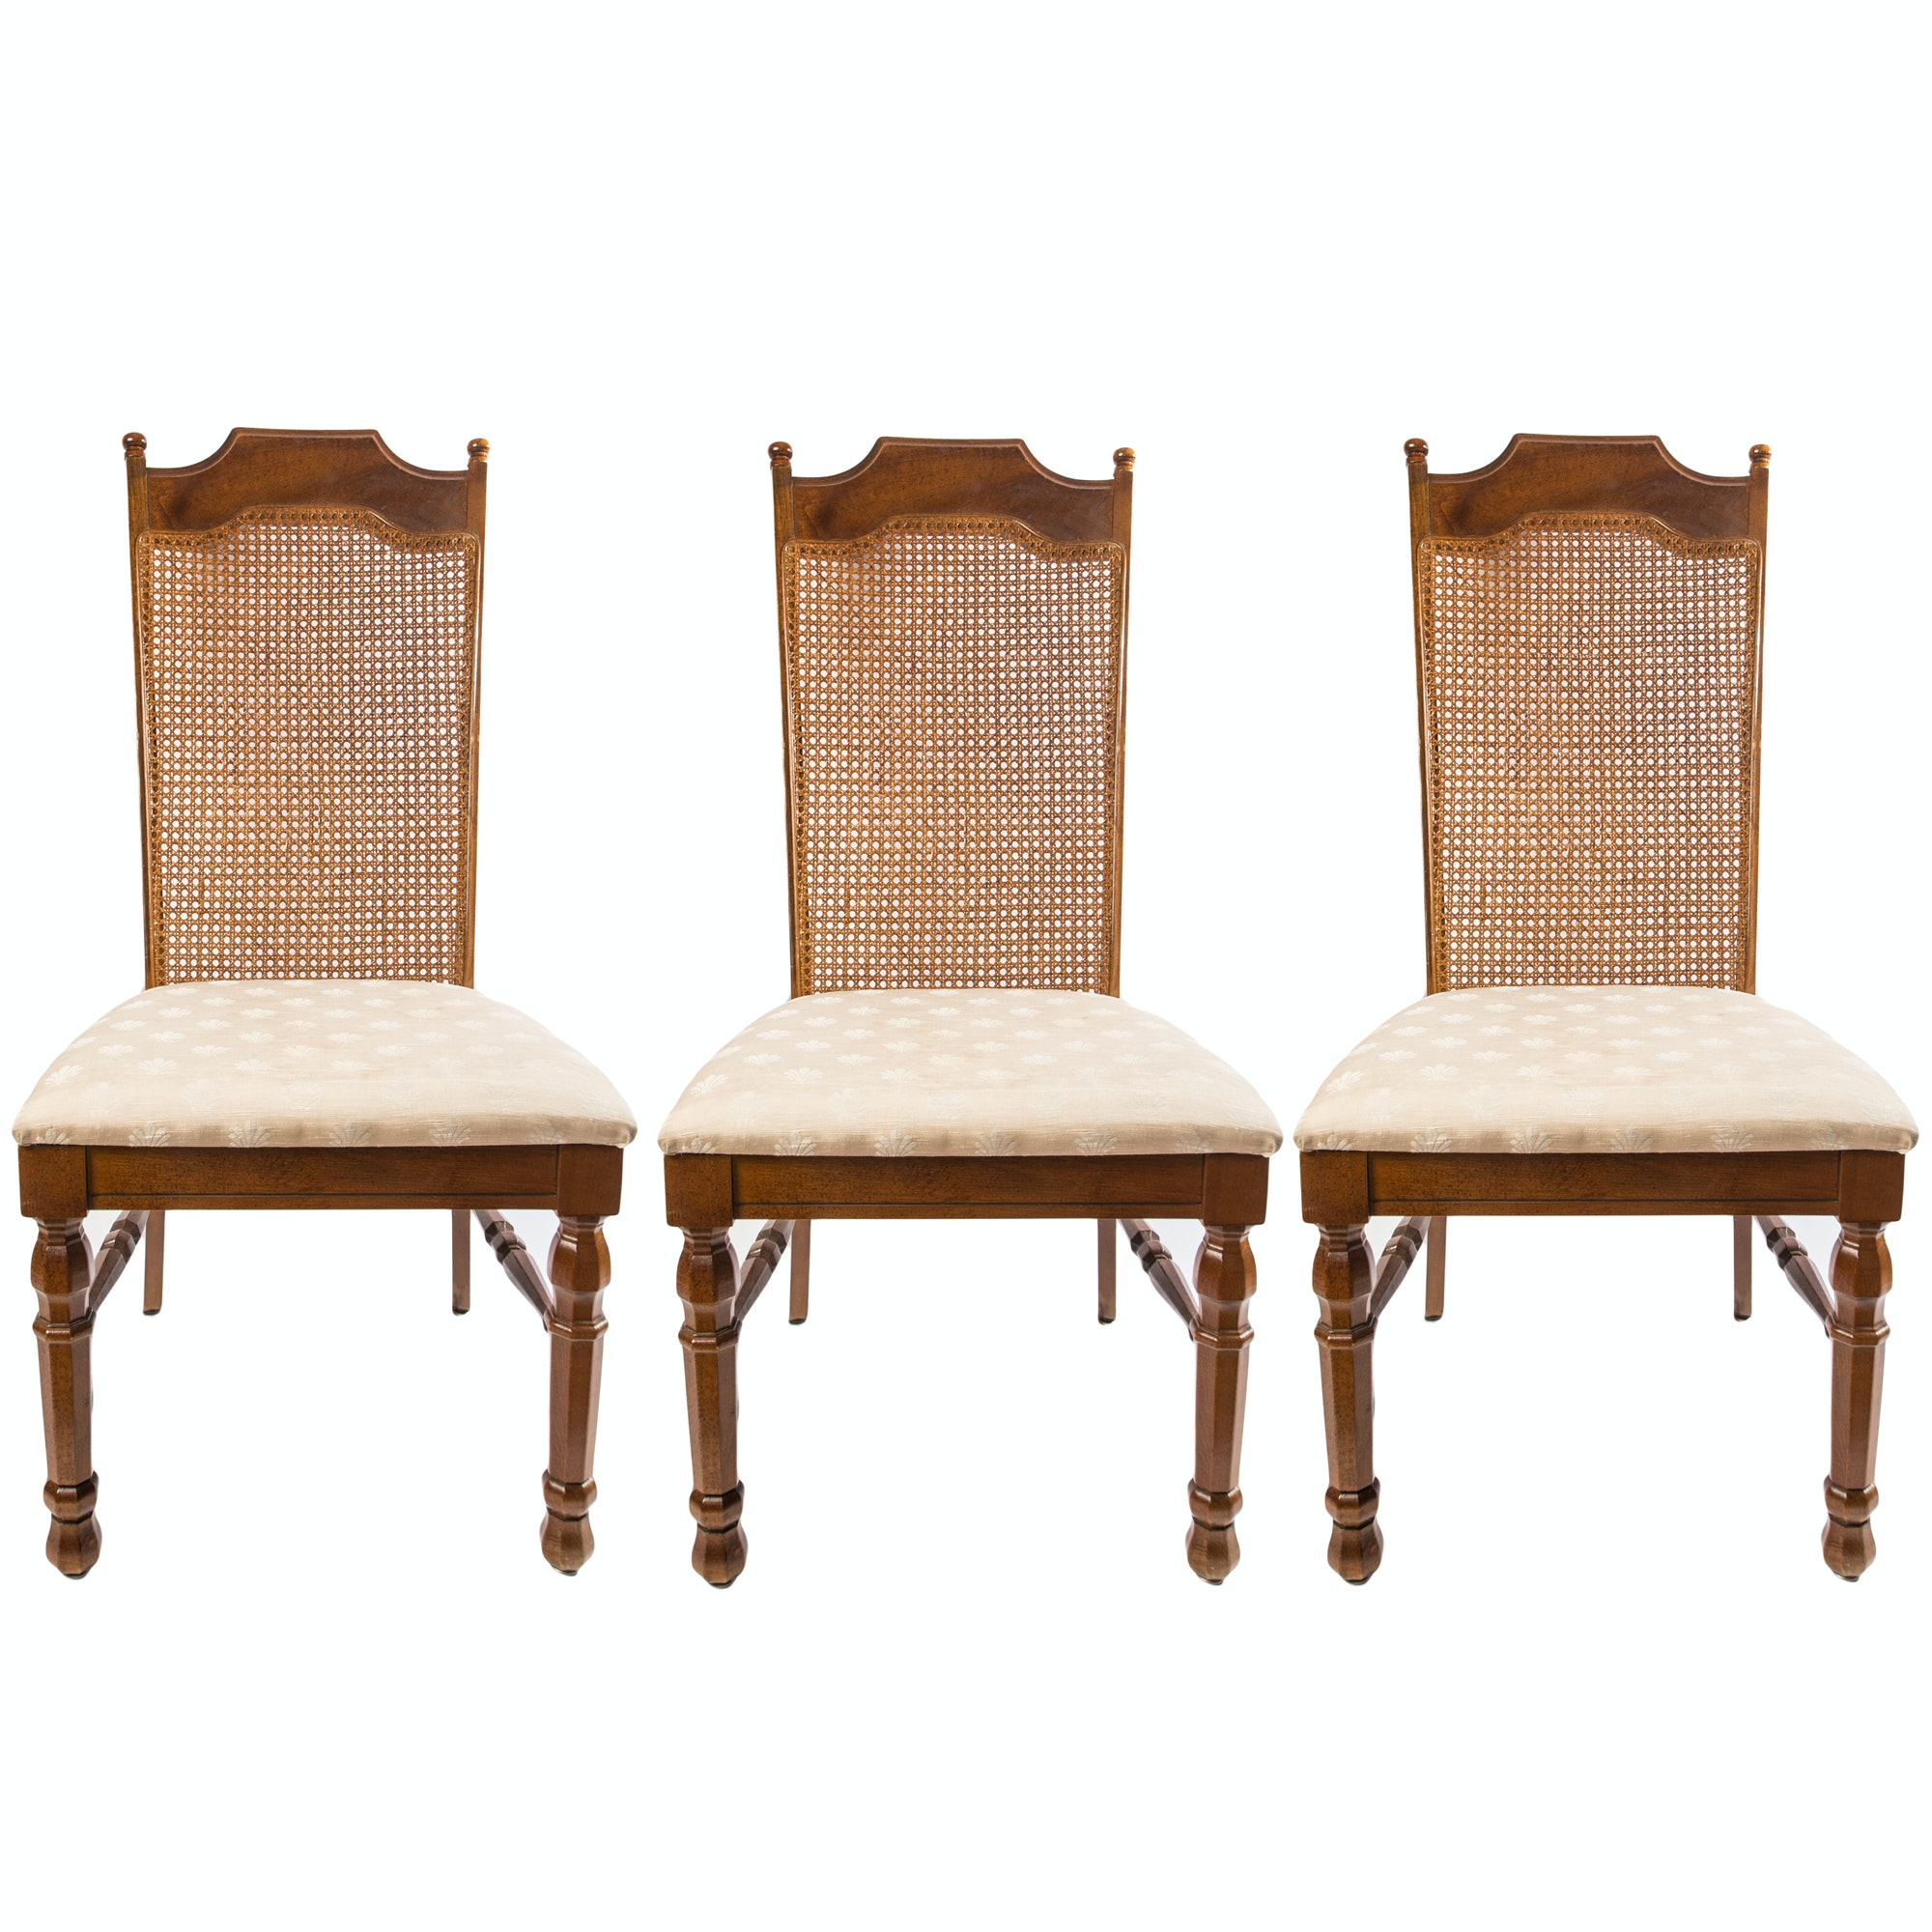 Vintage Broyhill Cane Back Dining Chairs ...